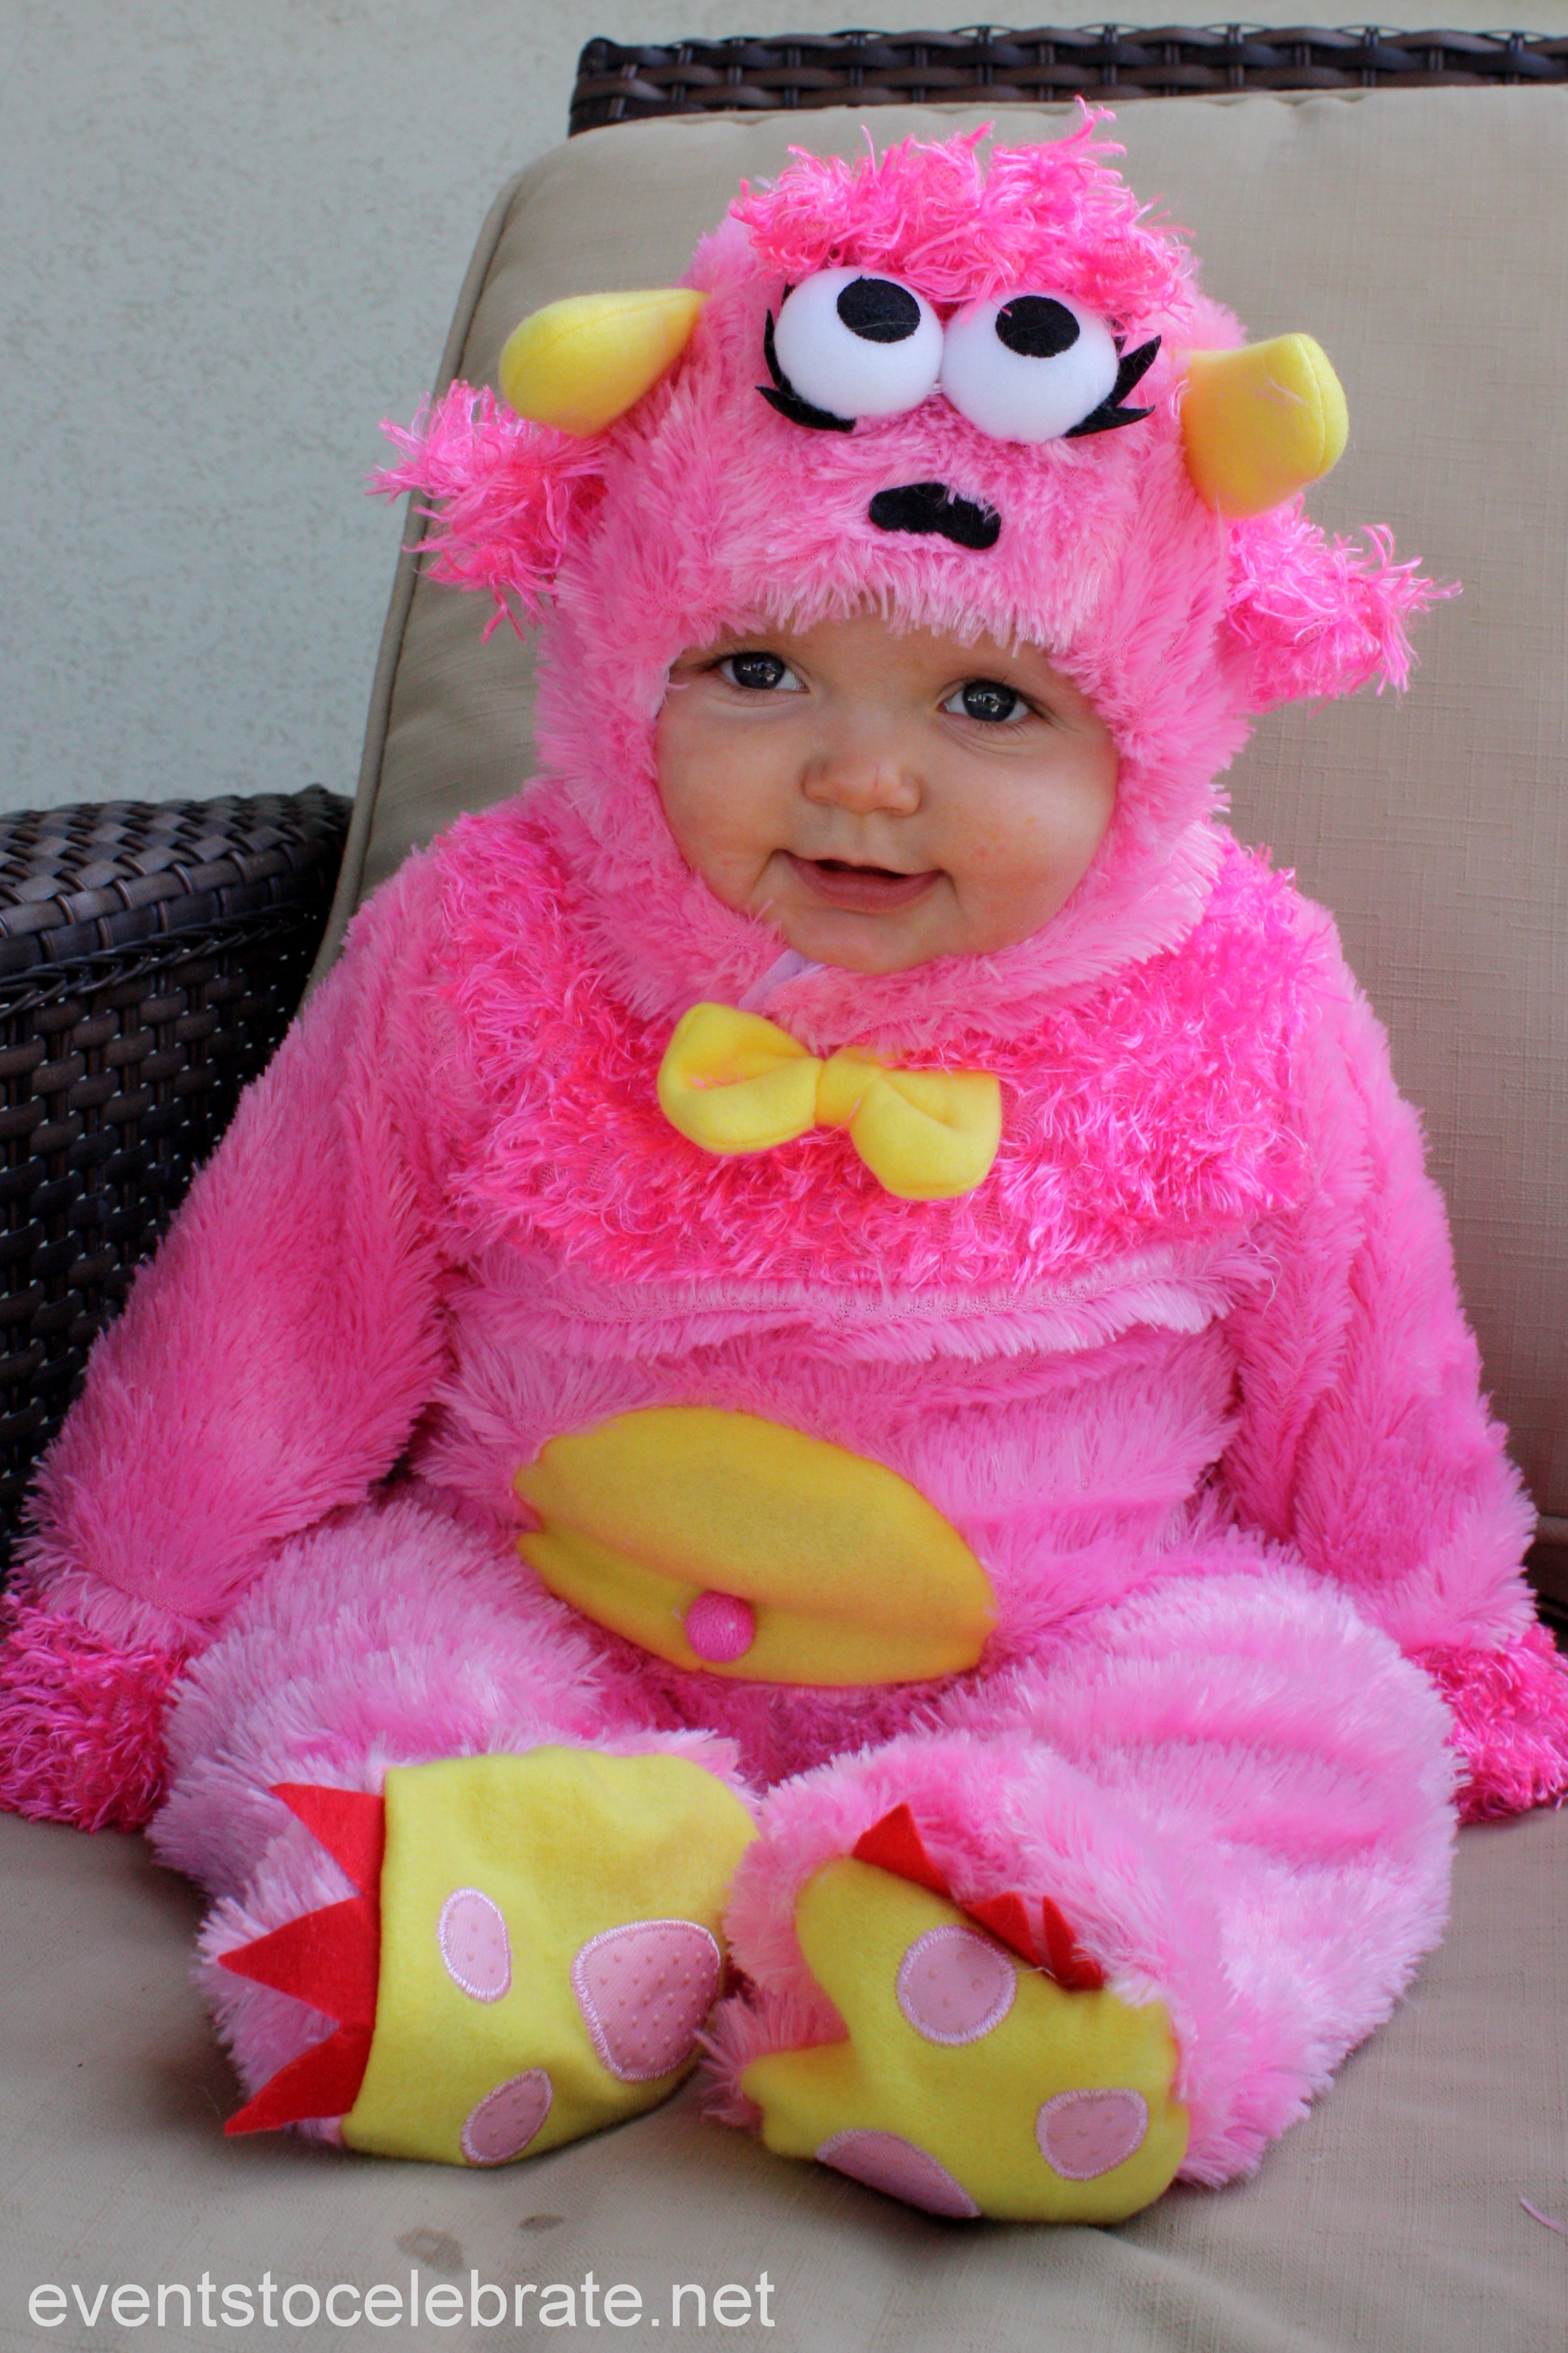 Baby Monster Halloween Costume  sc 1 st  events to CELEBRATE! & Baby Monster Halloween Costume - events to CELEBRATE!